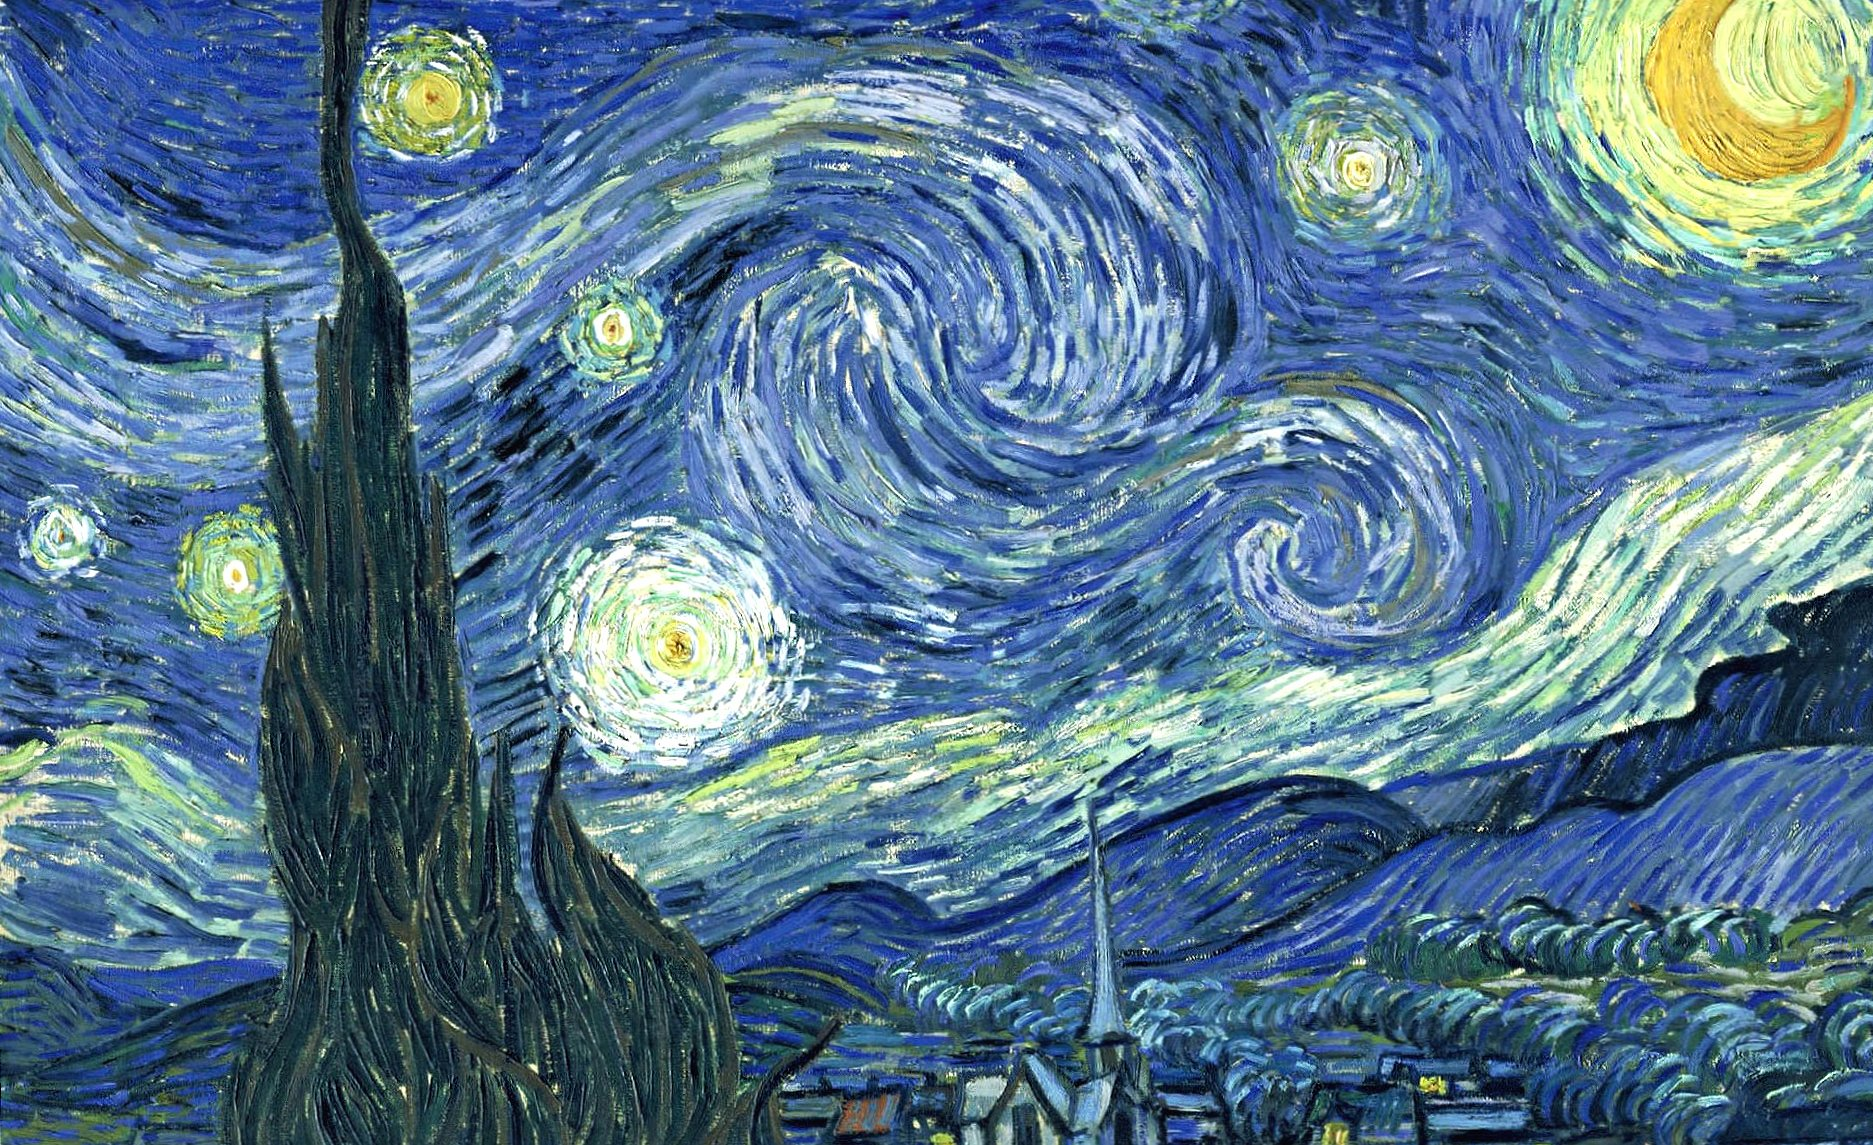 Vincent van gogh starry night wallpapers HD quality